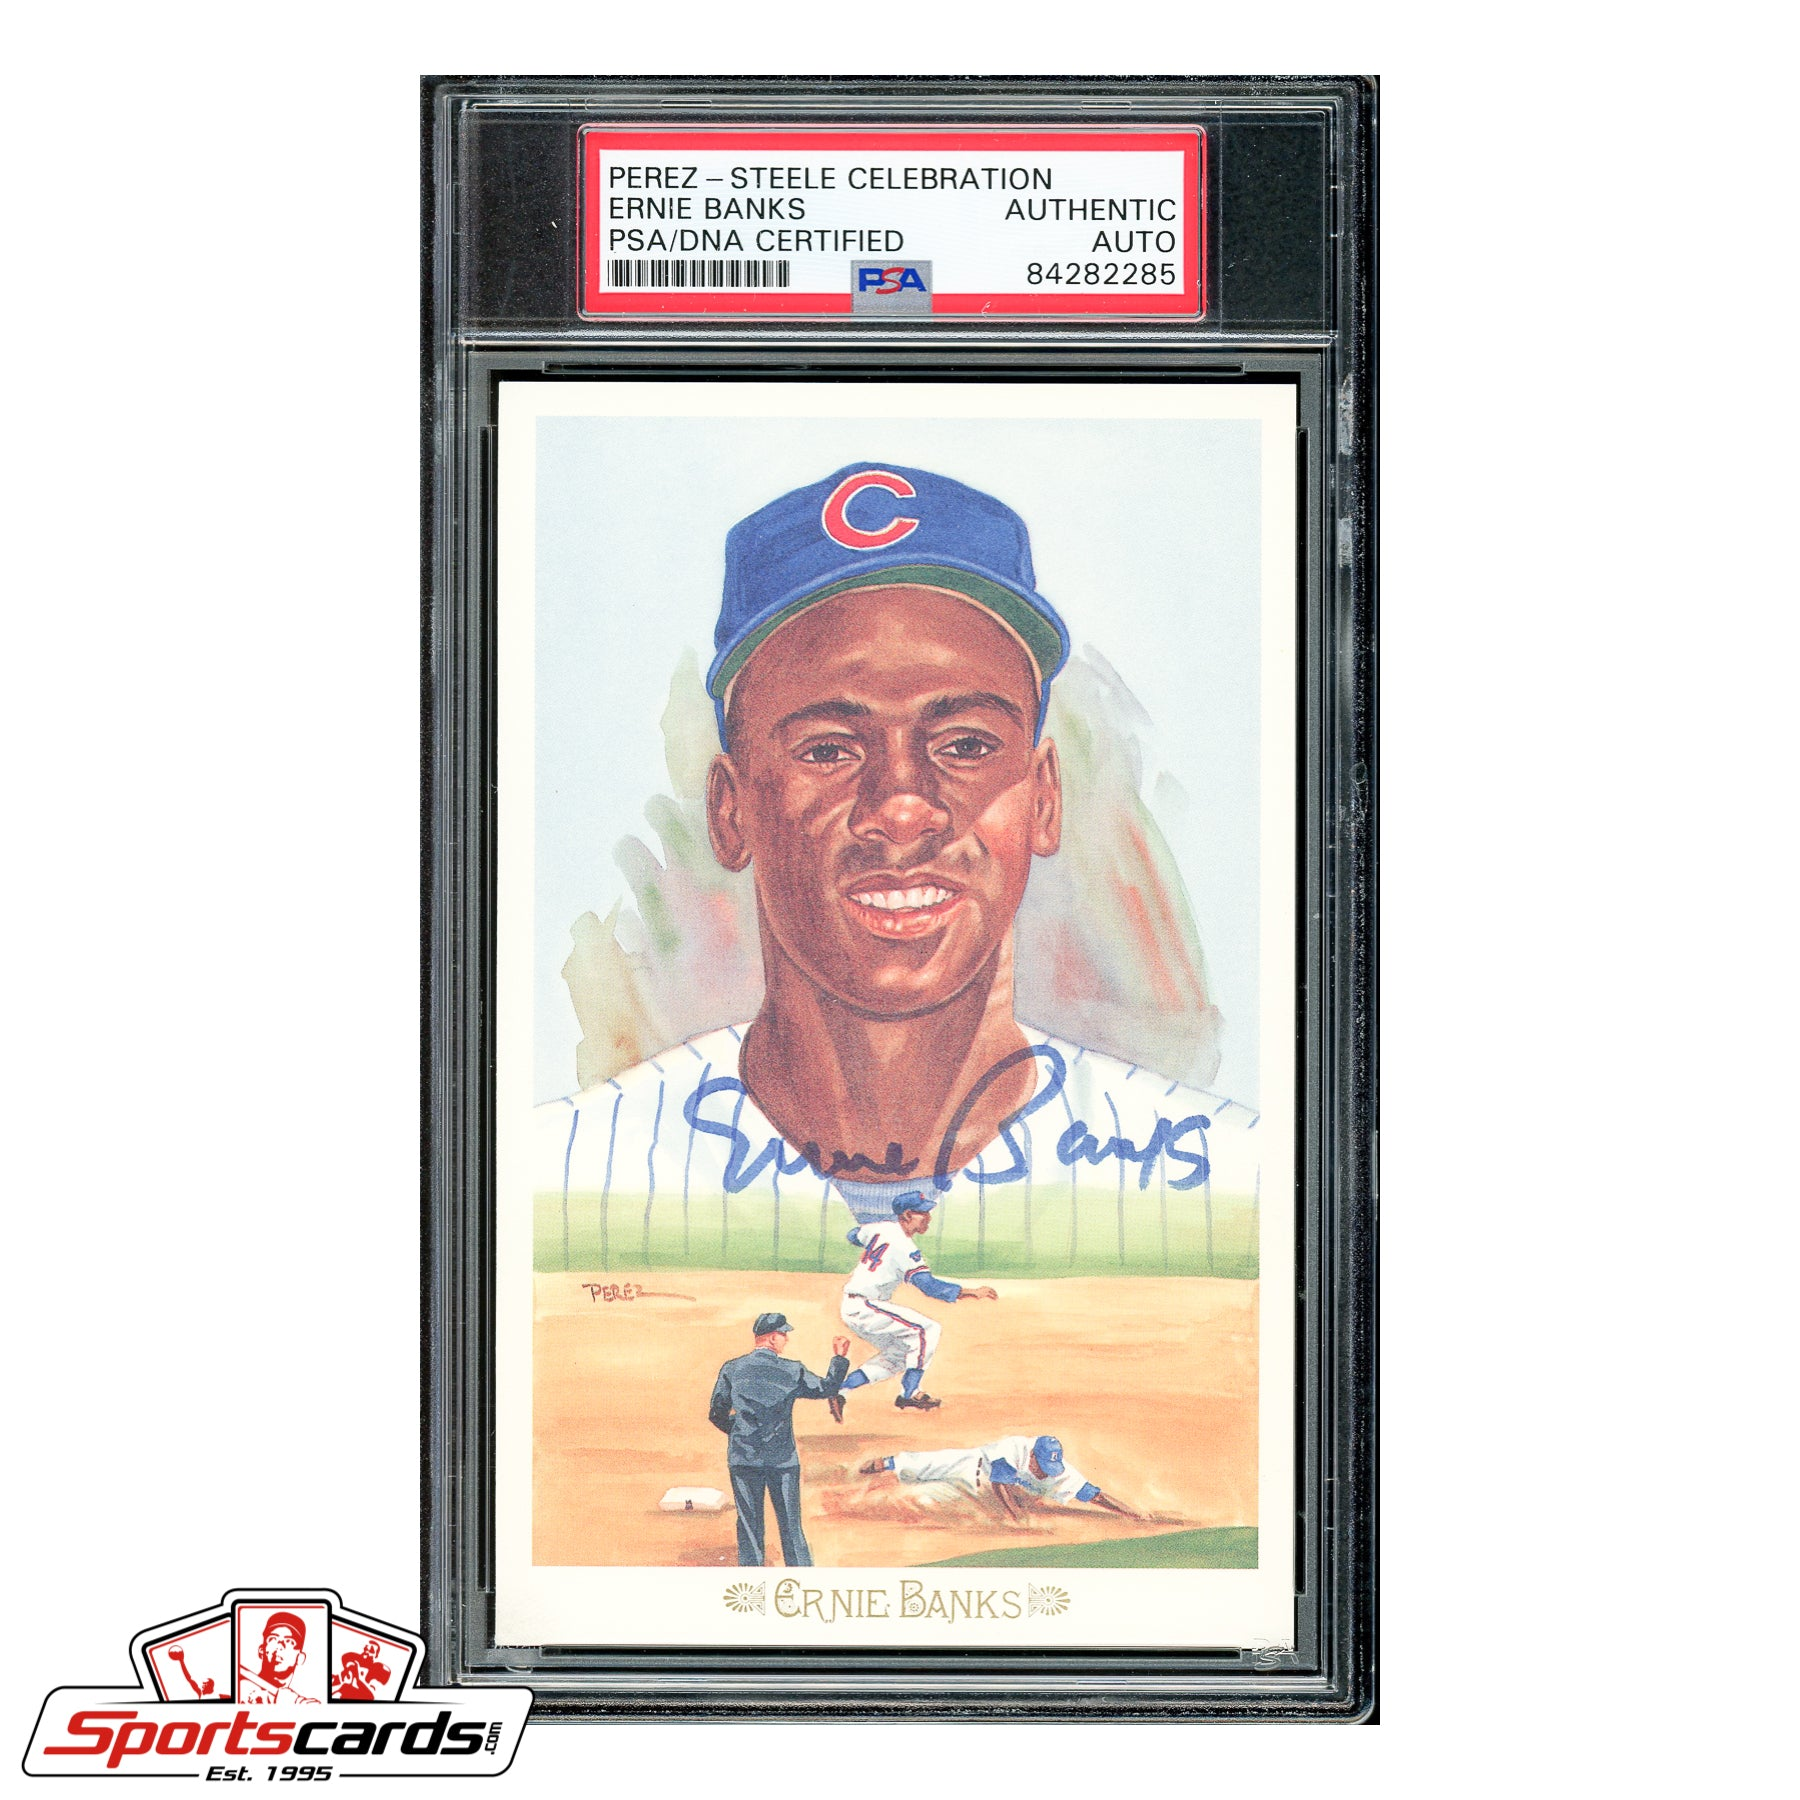 Ernie Banks Signed Auto Perez Steele Celebration Postcard - PSA/DNA